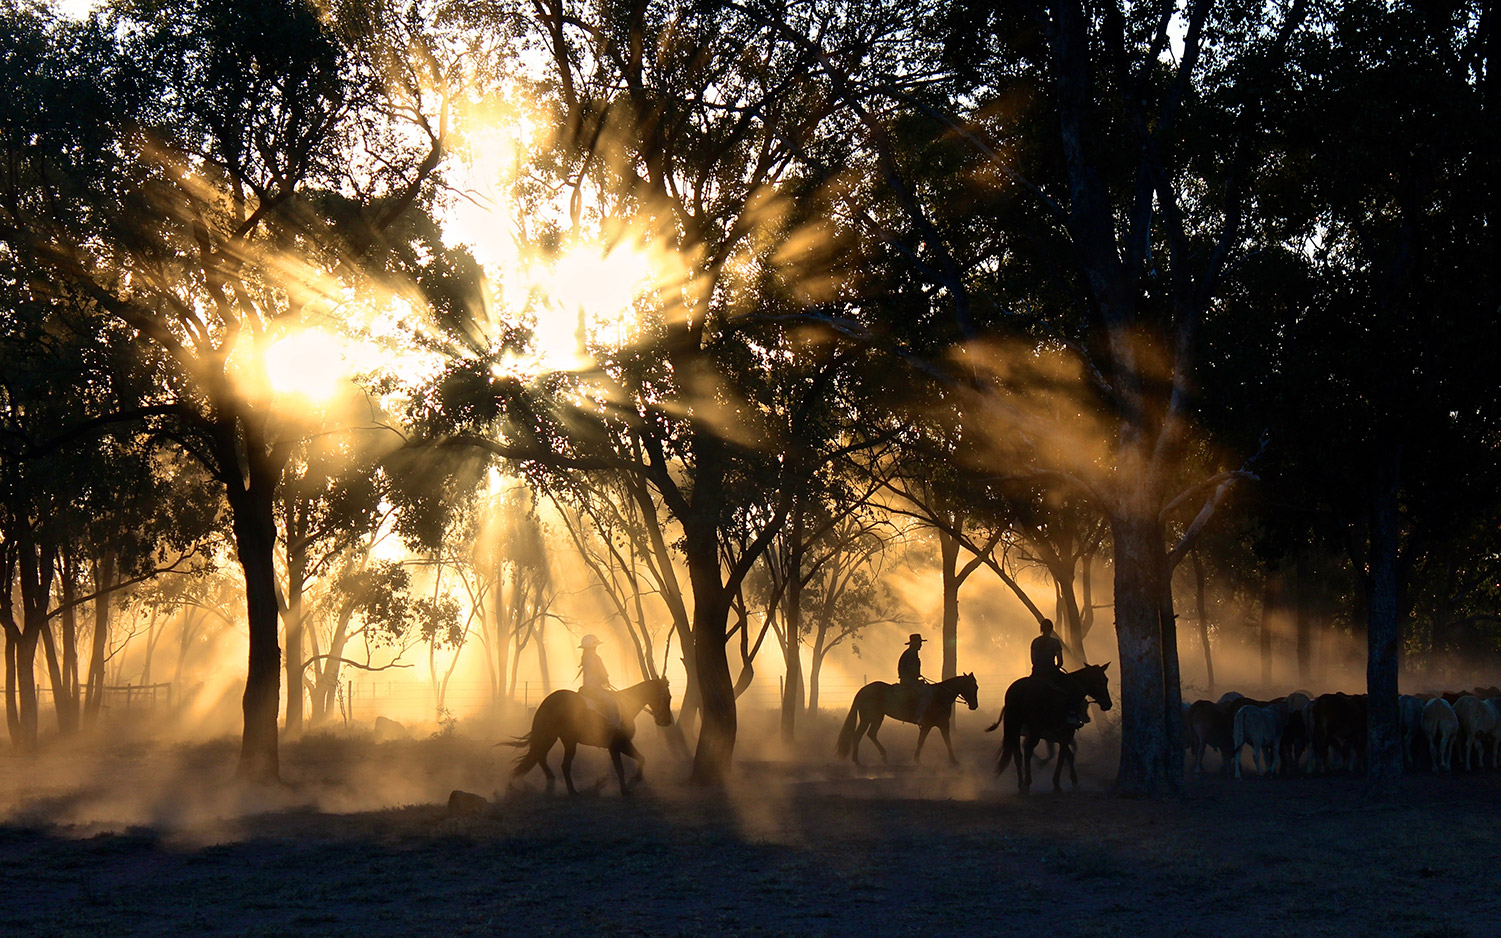 horseback-riding-trail-sunset.jpg